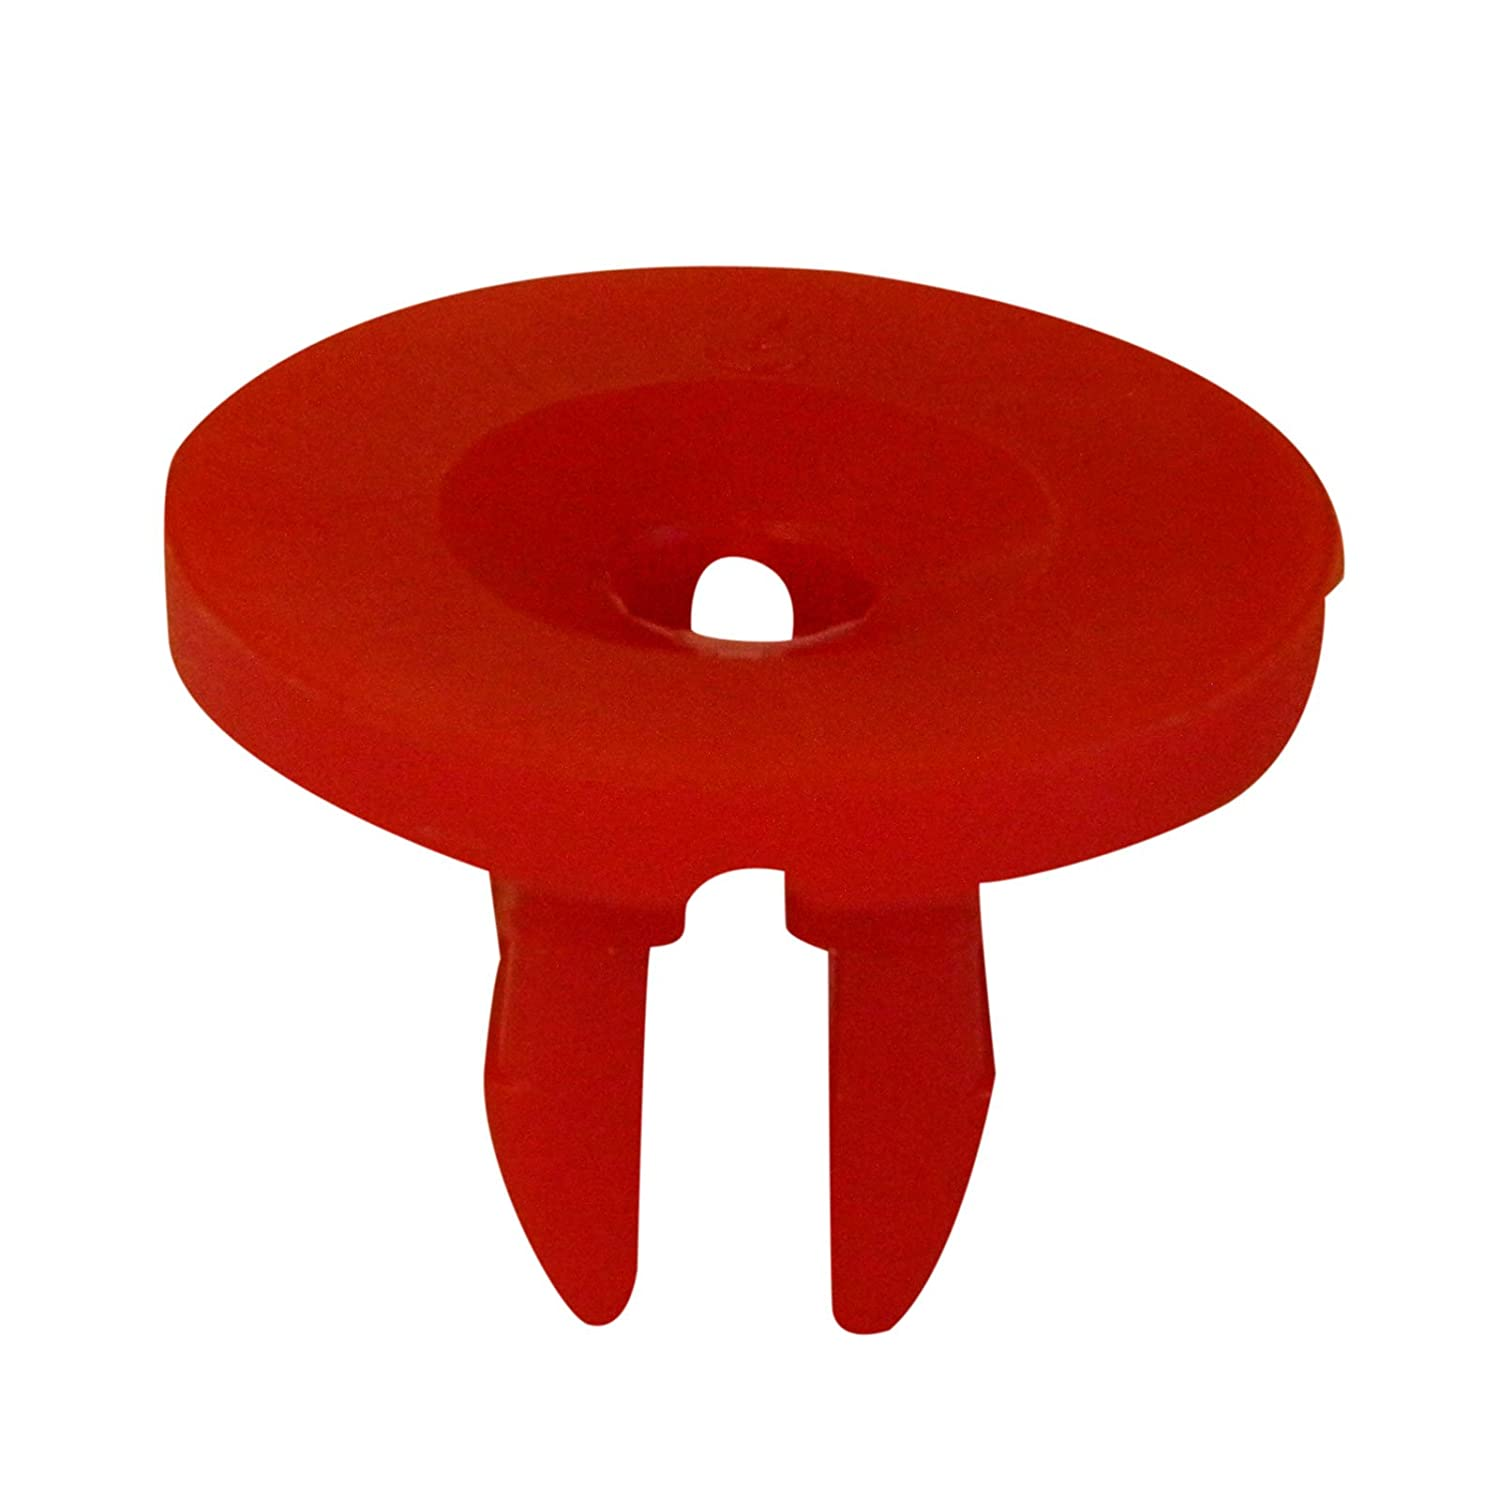 Bross BCF380 10 Pieces Screw Nut; Red for Ford: 1019377, W704408S Mercedes: 0009889325 Bross Auto Parts